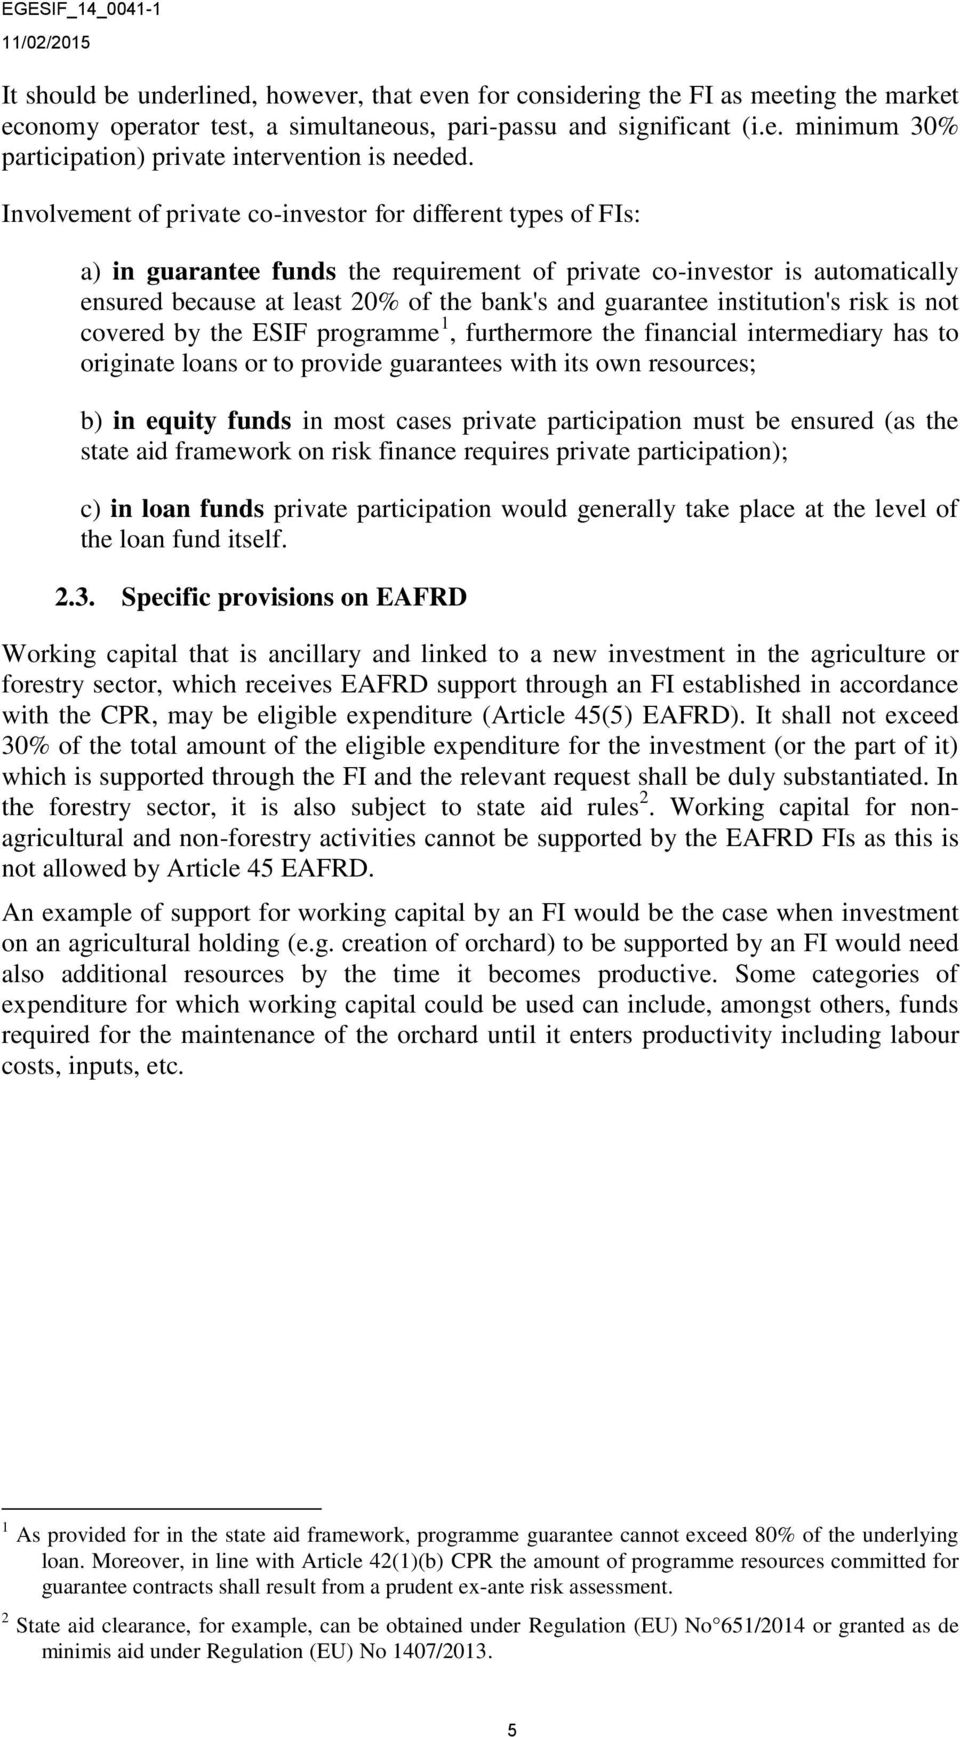 institution's risk is not covered by the ESIF programme 1, furthermore the financial intermediary has to originate loans or to provide guarantees with its own resources; b) in equity funds in most